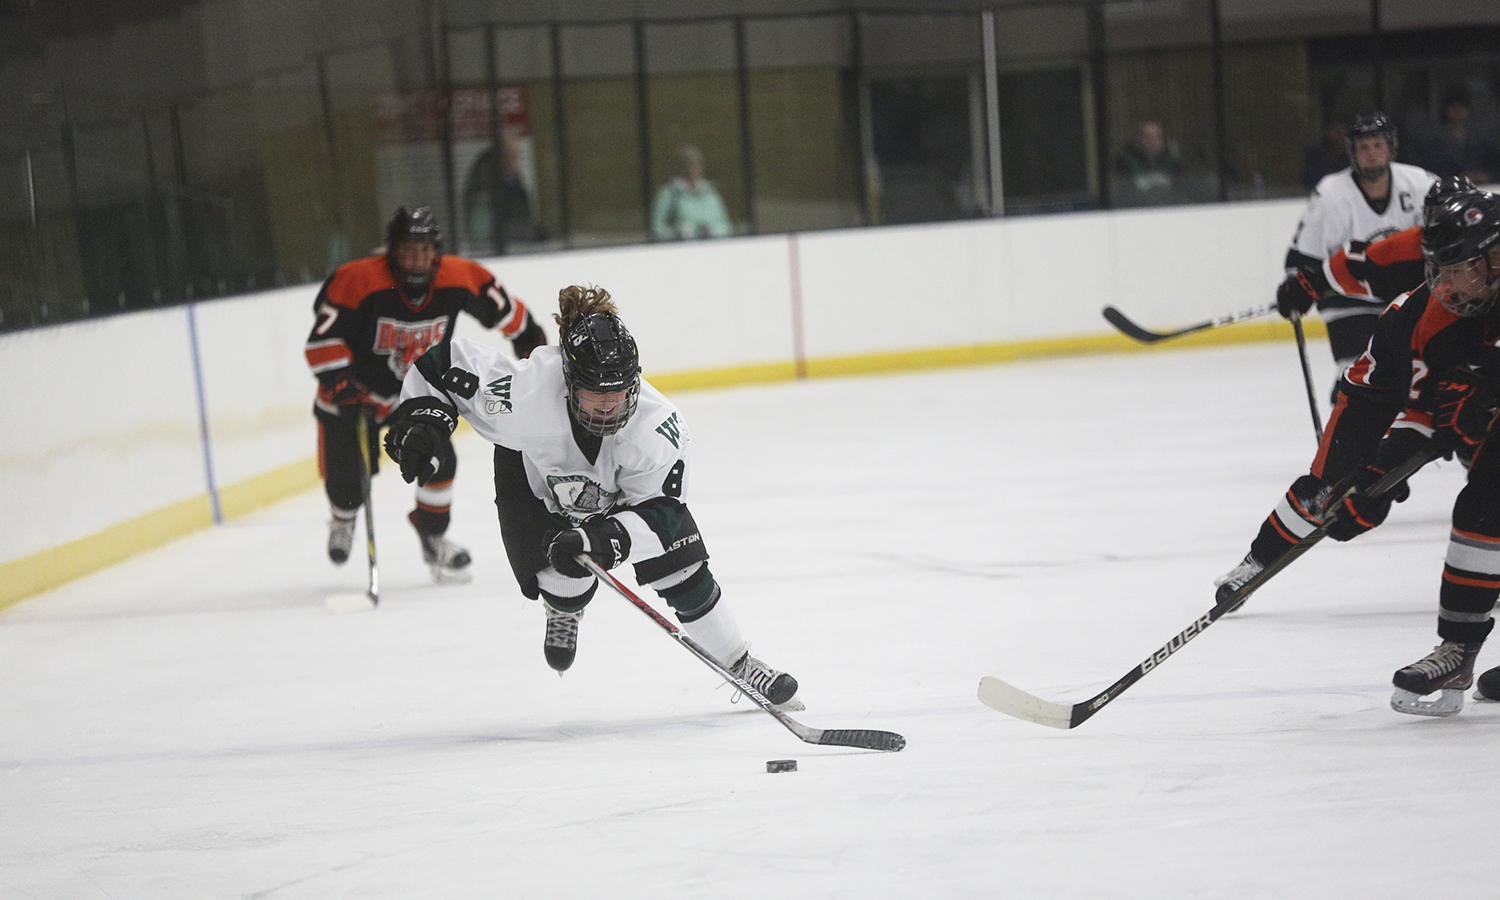 Lindsay Brown '€™19 moves the puck down ice during William Smith's 4-3 win over Buffalo State.